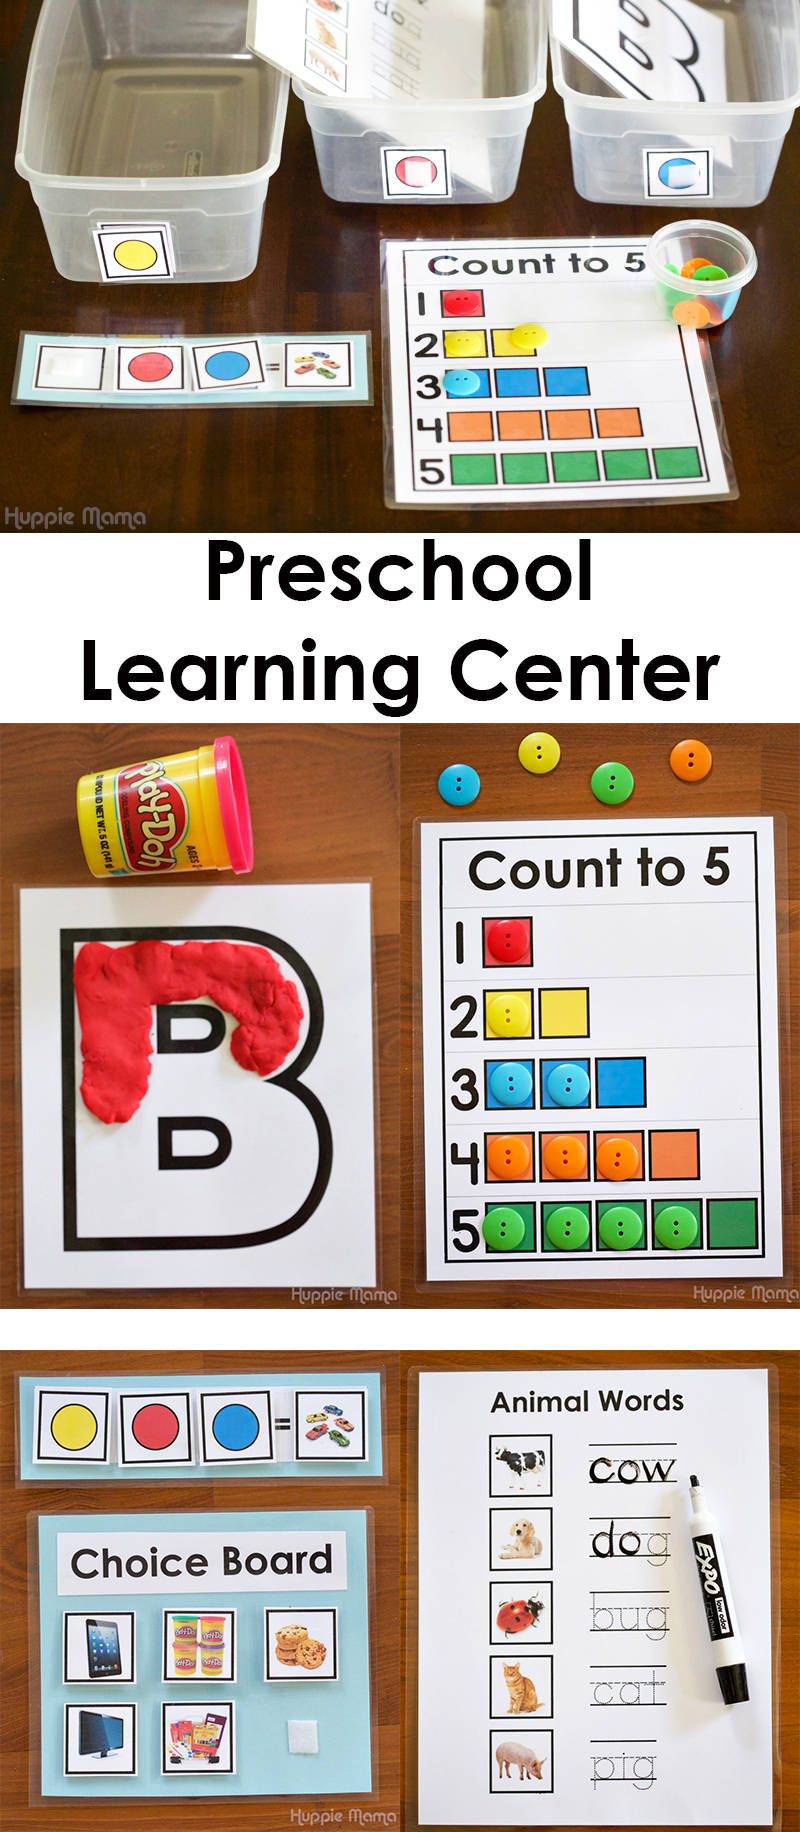 Preschool Learning Center